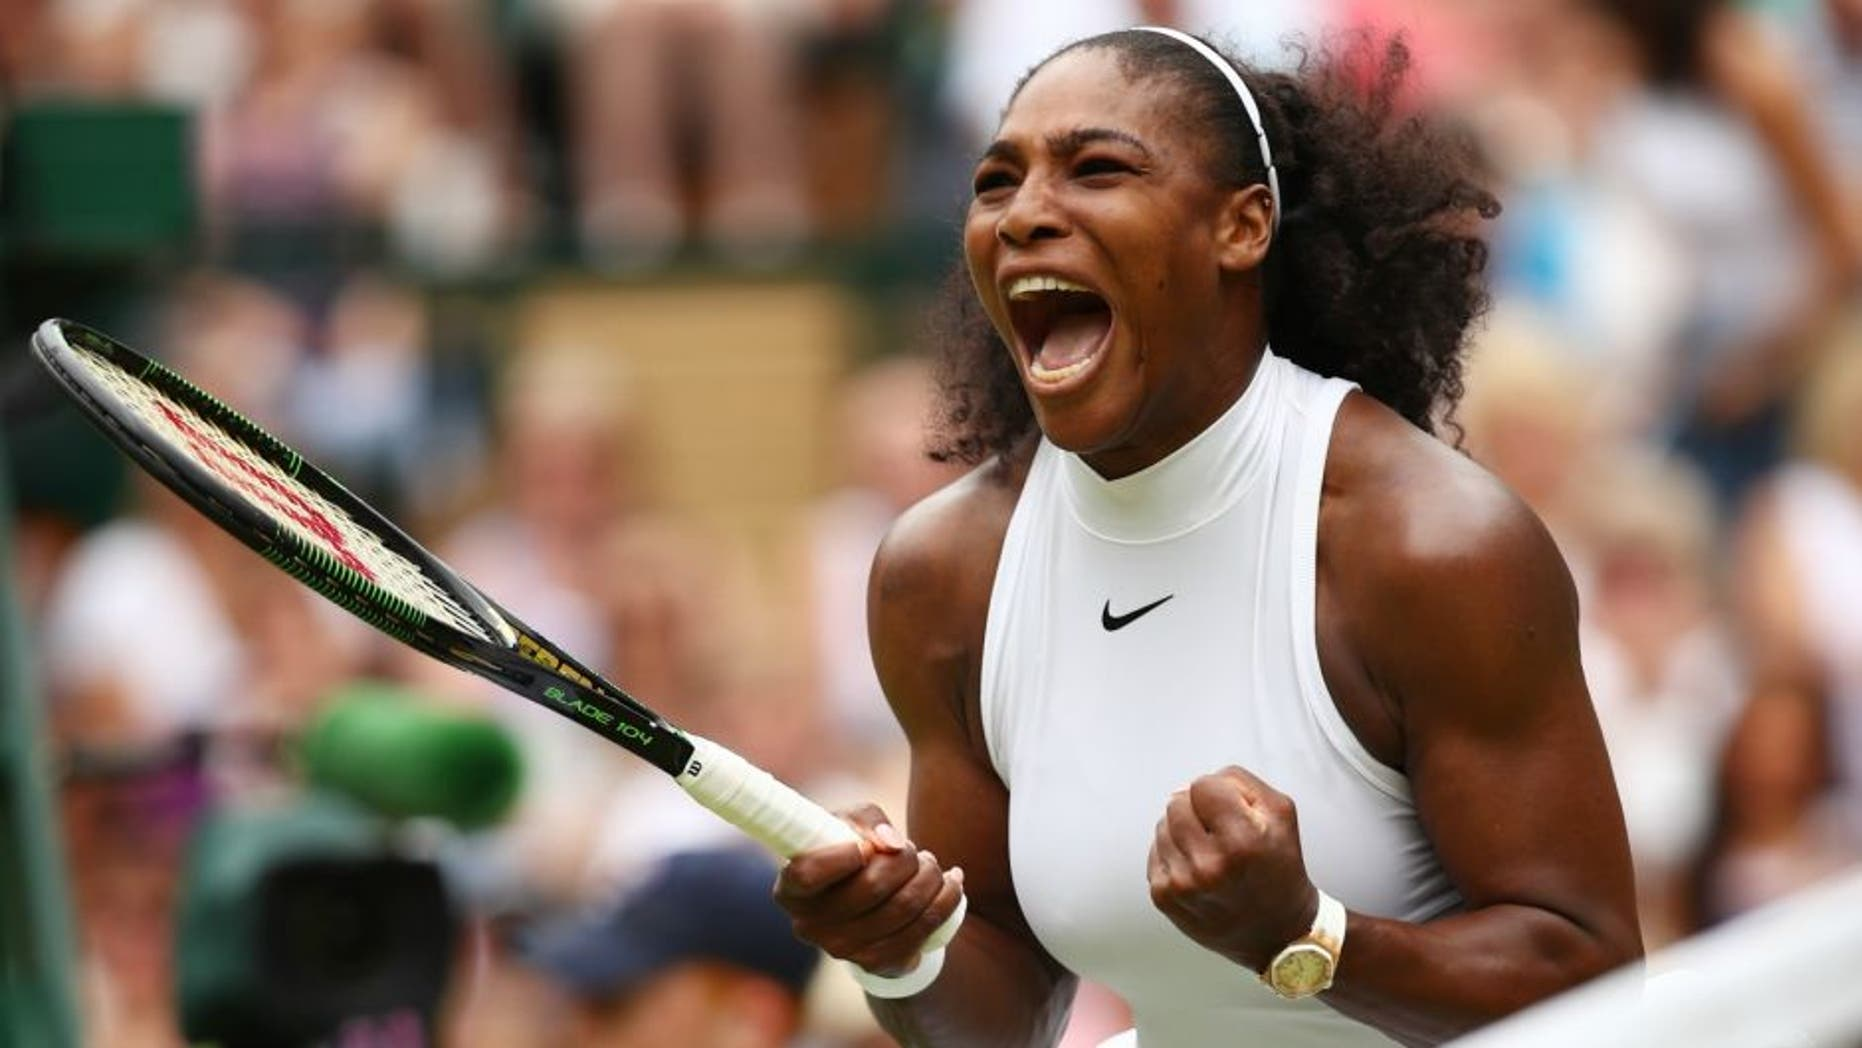 **** during the **** against **** on day twelve of the Wimbledon Lawn Tennis Championships at the All England Lawn Tennis and Croquet Club on July 9, 2016 in London, England.,LONDON, ENGLAND - JULY 09: Serena Williams of The United States celebrates during The Ladies Singles Final against Angelique Kerber of Germany on day twelve of the Wimbledon Lawn Tennis Championships at the All England Lawn Tennis and Croquet Club on July 9, 2016 in London, England. (Photo by Clive Brunskill/Getty Images)